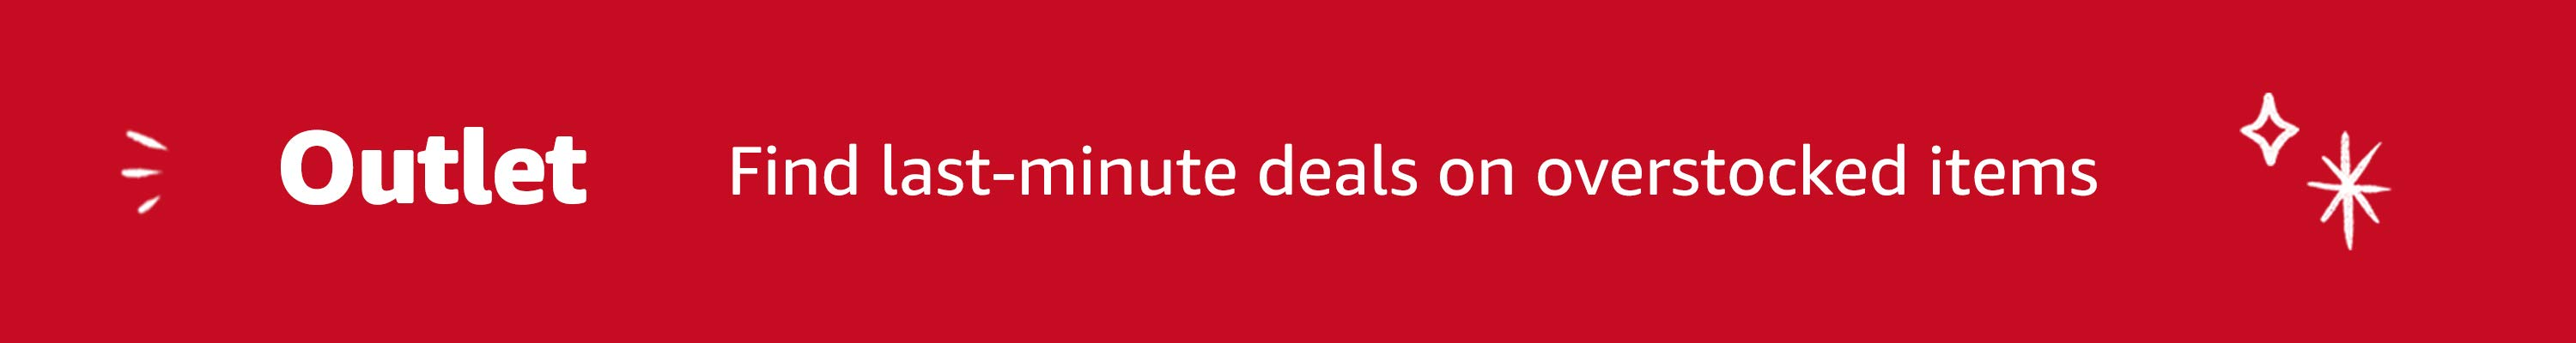 Outlet: Find last-minute deals on overstocked items